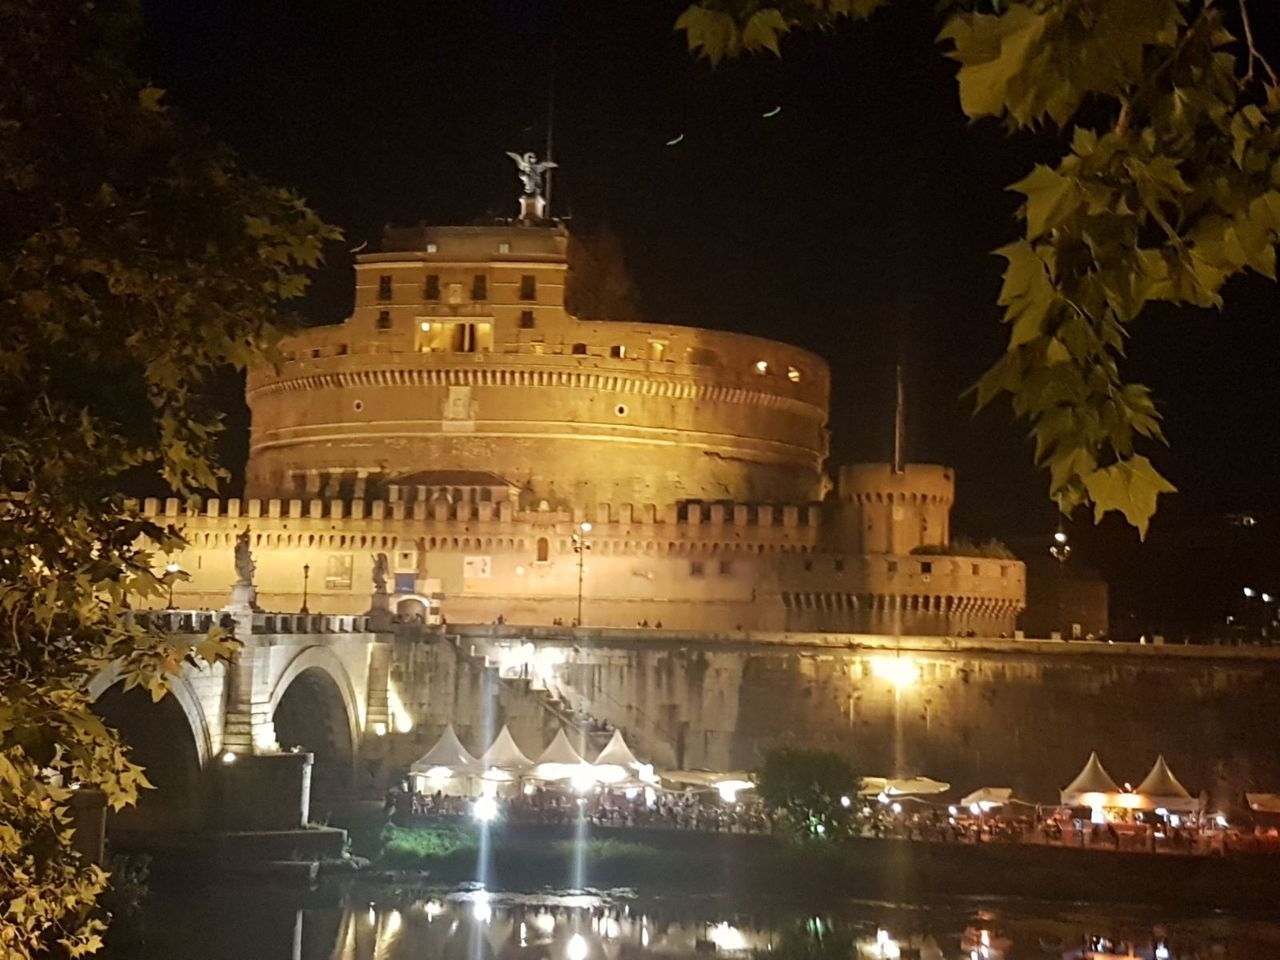 night, history, architecture, illuminated, built structure, building exterior, tree, outdoors, travel destinations, ancient, no people, nature, sky